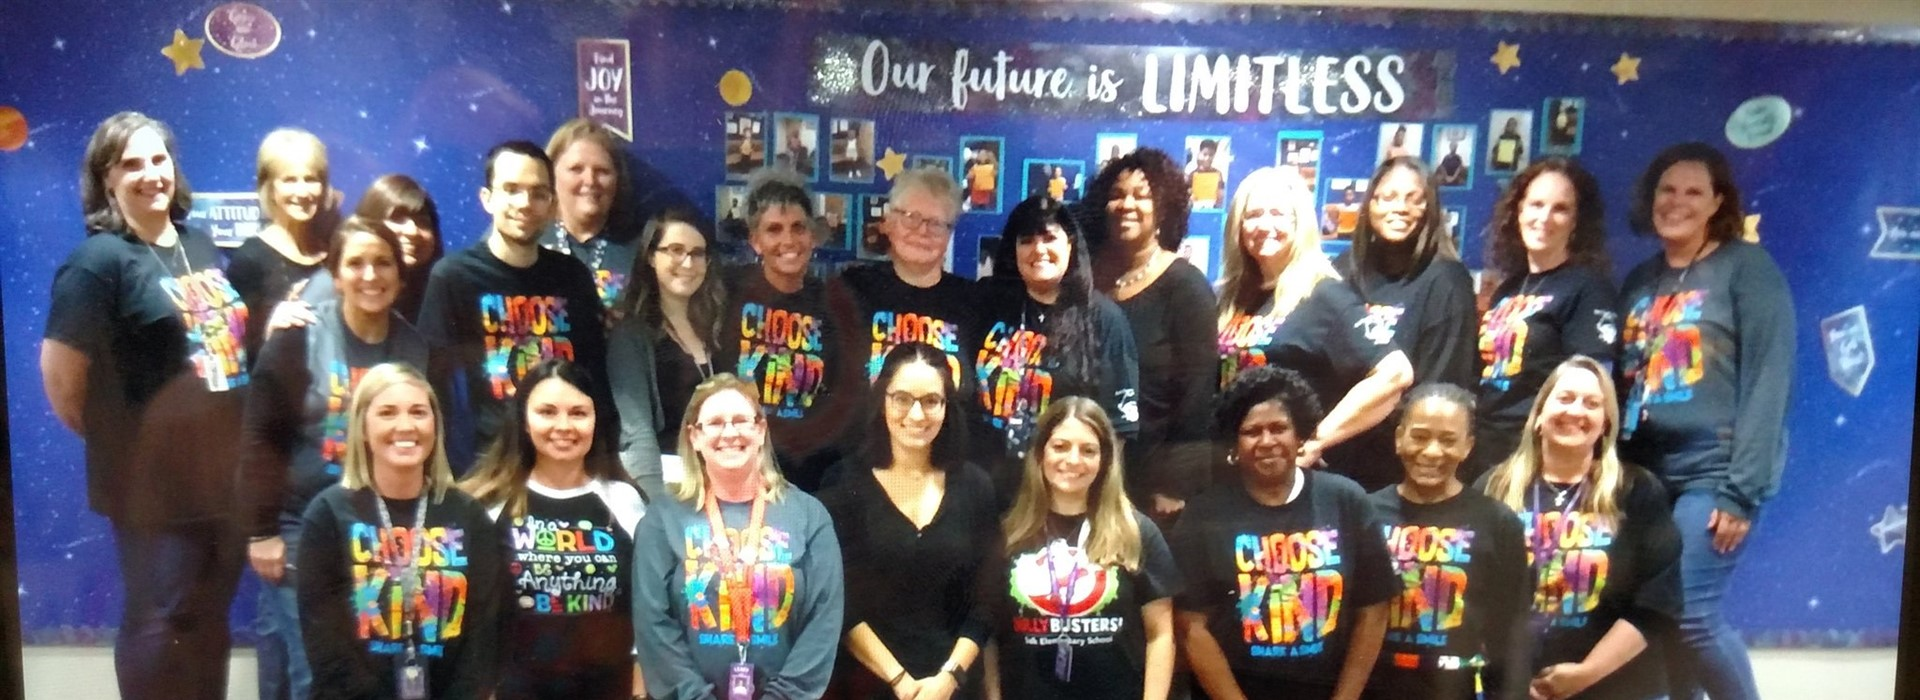 School Teachers in Choose Kind Shirts